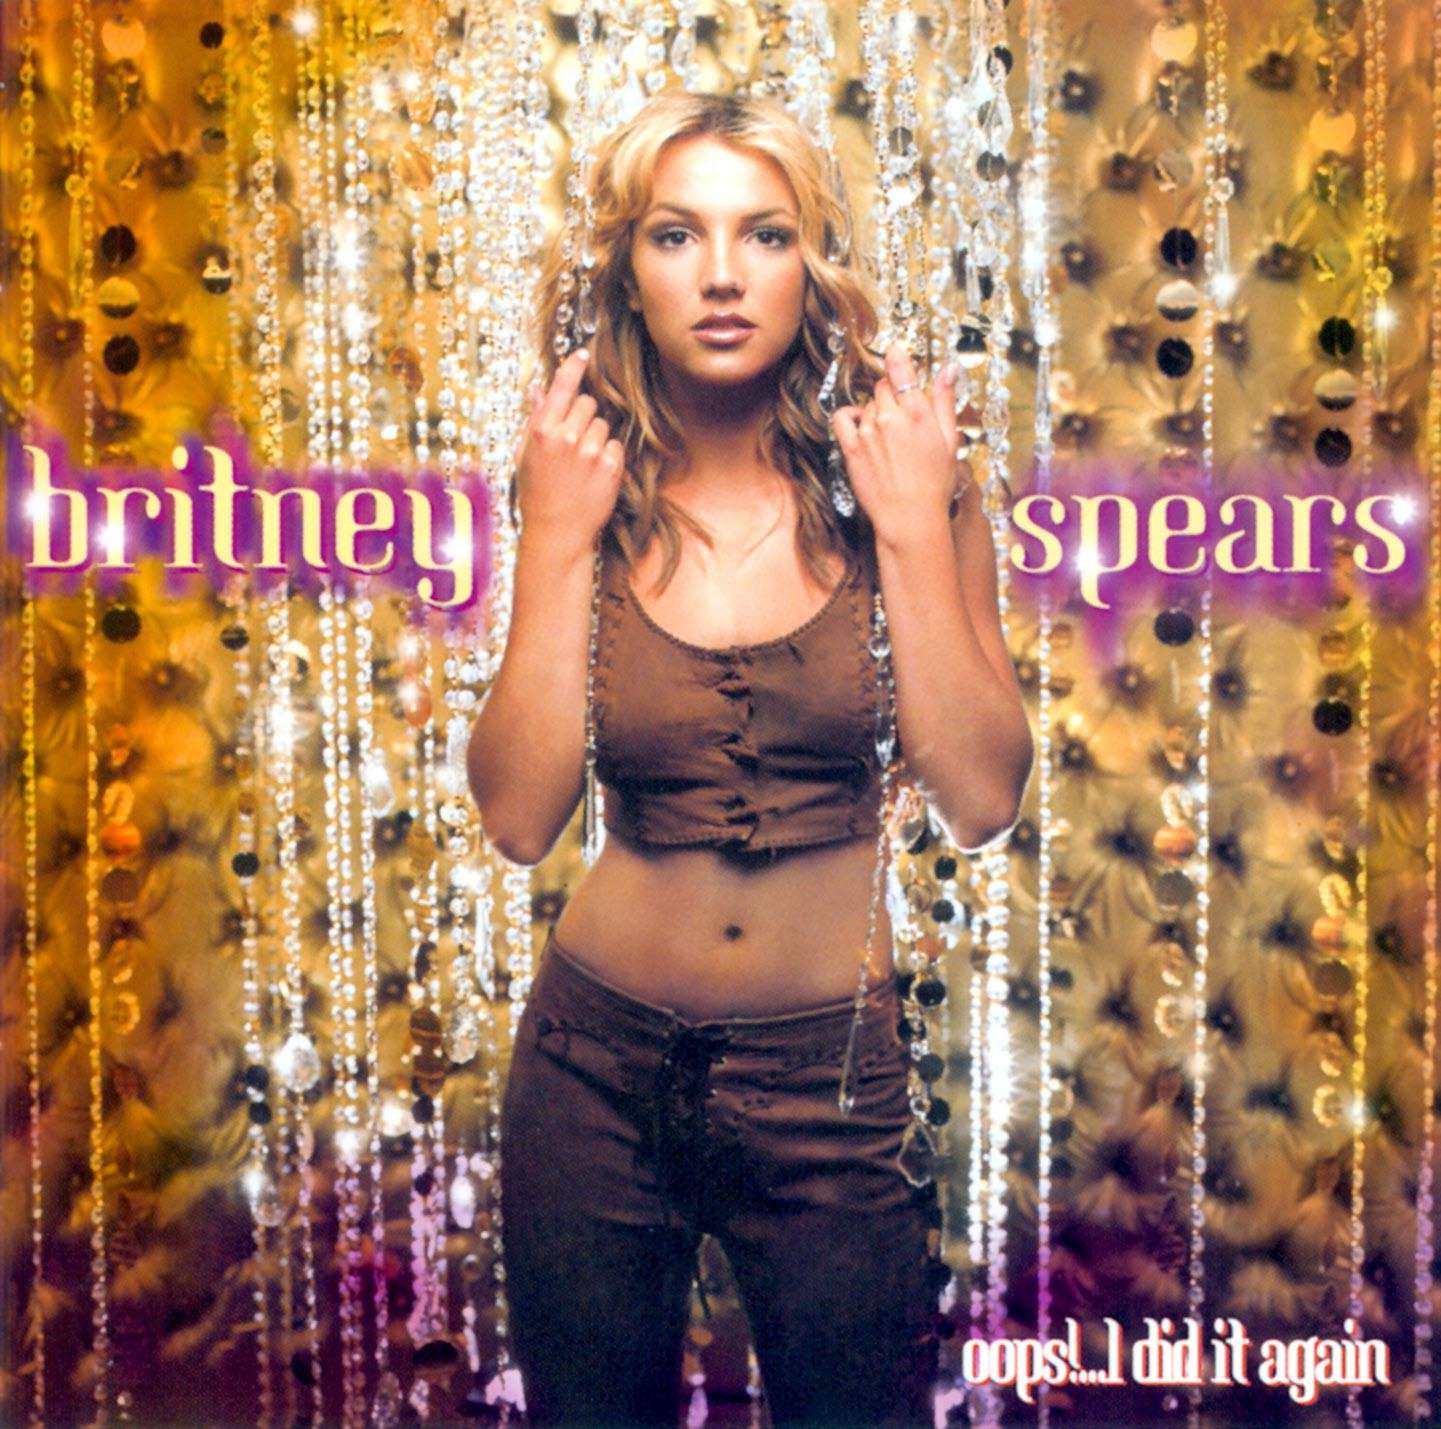 http://3.bp.blogspot.com/-3TGc_g2fNK4/UCfK47m2V-I/AAAAAAAAANg/EzP377mSWns/s1600/britney_spears_-_oops_i_did_it_again-front.jpg